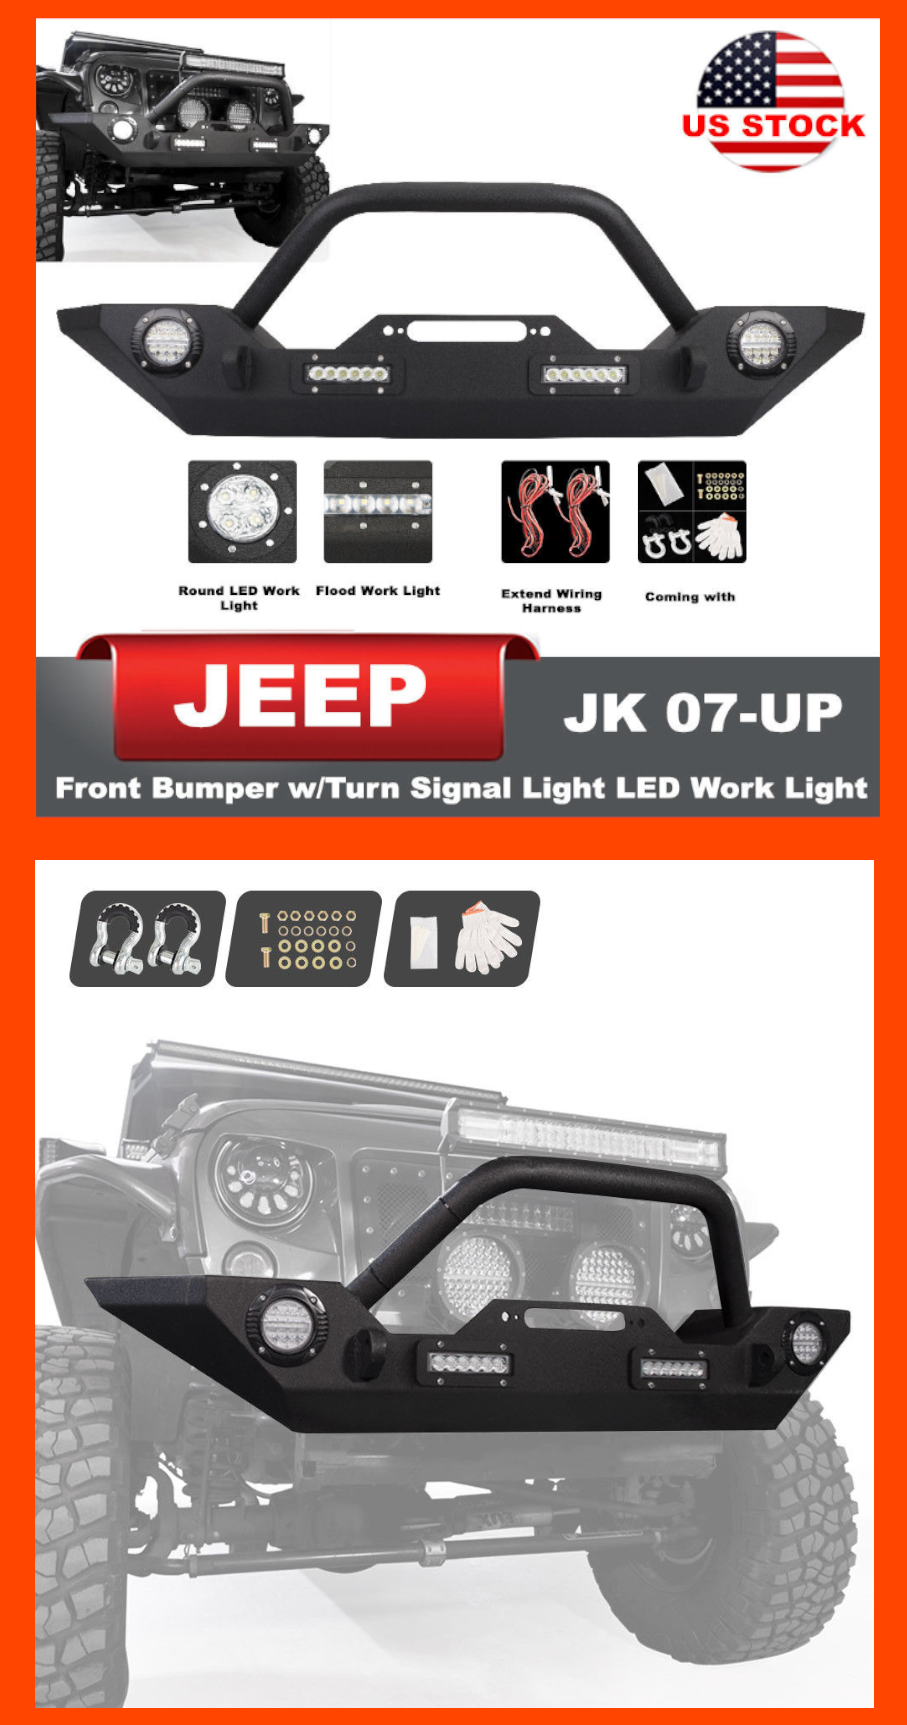 medium resolution of front bumper built in winch plate turn signal lights for jeep wrangler jk us 169 90 jeep jeeplife jk wrangler rubicon bumper 4wd offroad suv